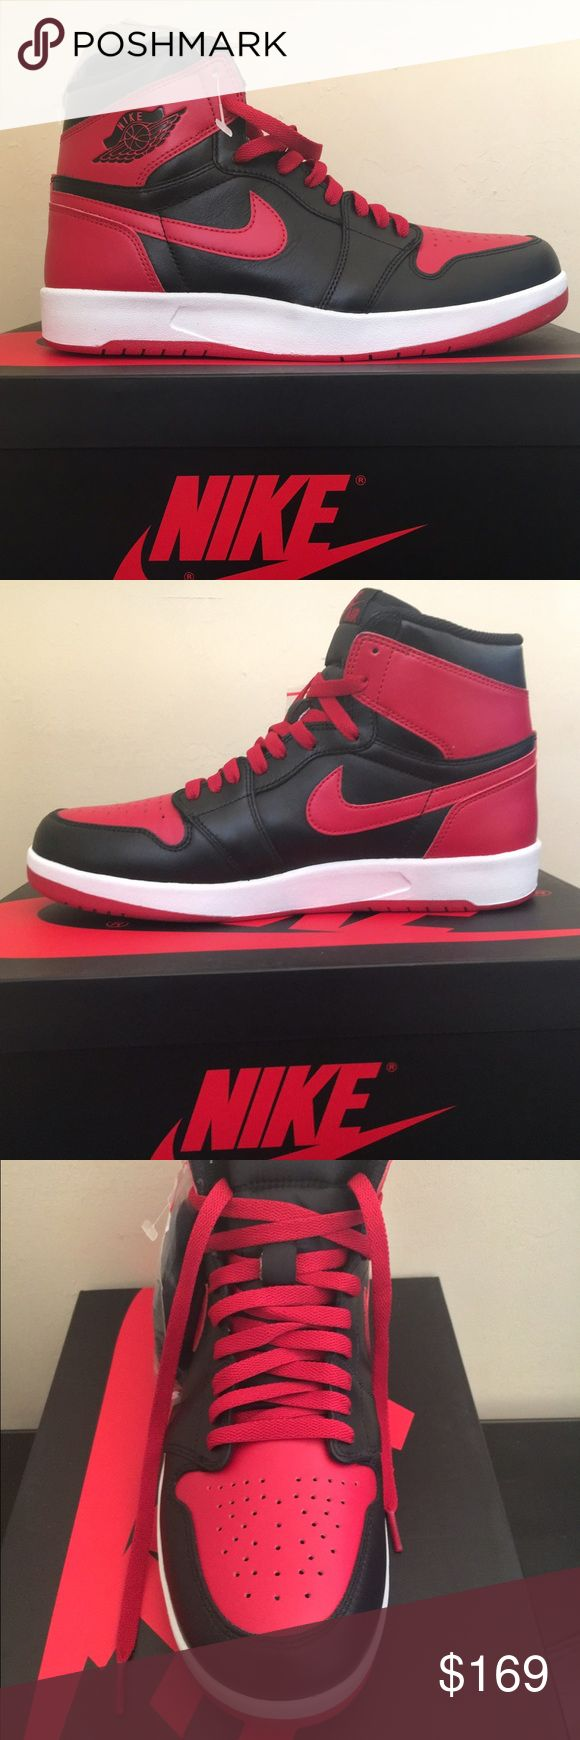 """Air Jordan 1 The Return """"Banned"""" 9.5 Air Jordan The Return features a Air Jordan 2 sole with an Air Jordan 1 upper. The colorway is the same as the original Air Jordan sneakers sold in 1985, now known as the """"Banned"""" colorway. It comes with the original box and a set of black laces still attached to the shoe. They are new and have never been worn. Jordan Shoes Athletic Shoes"""